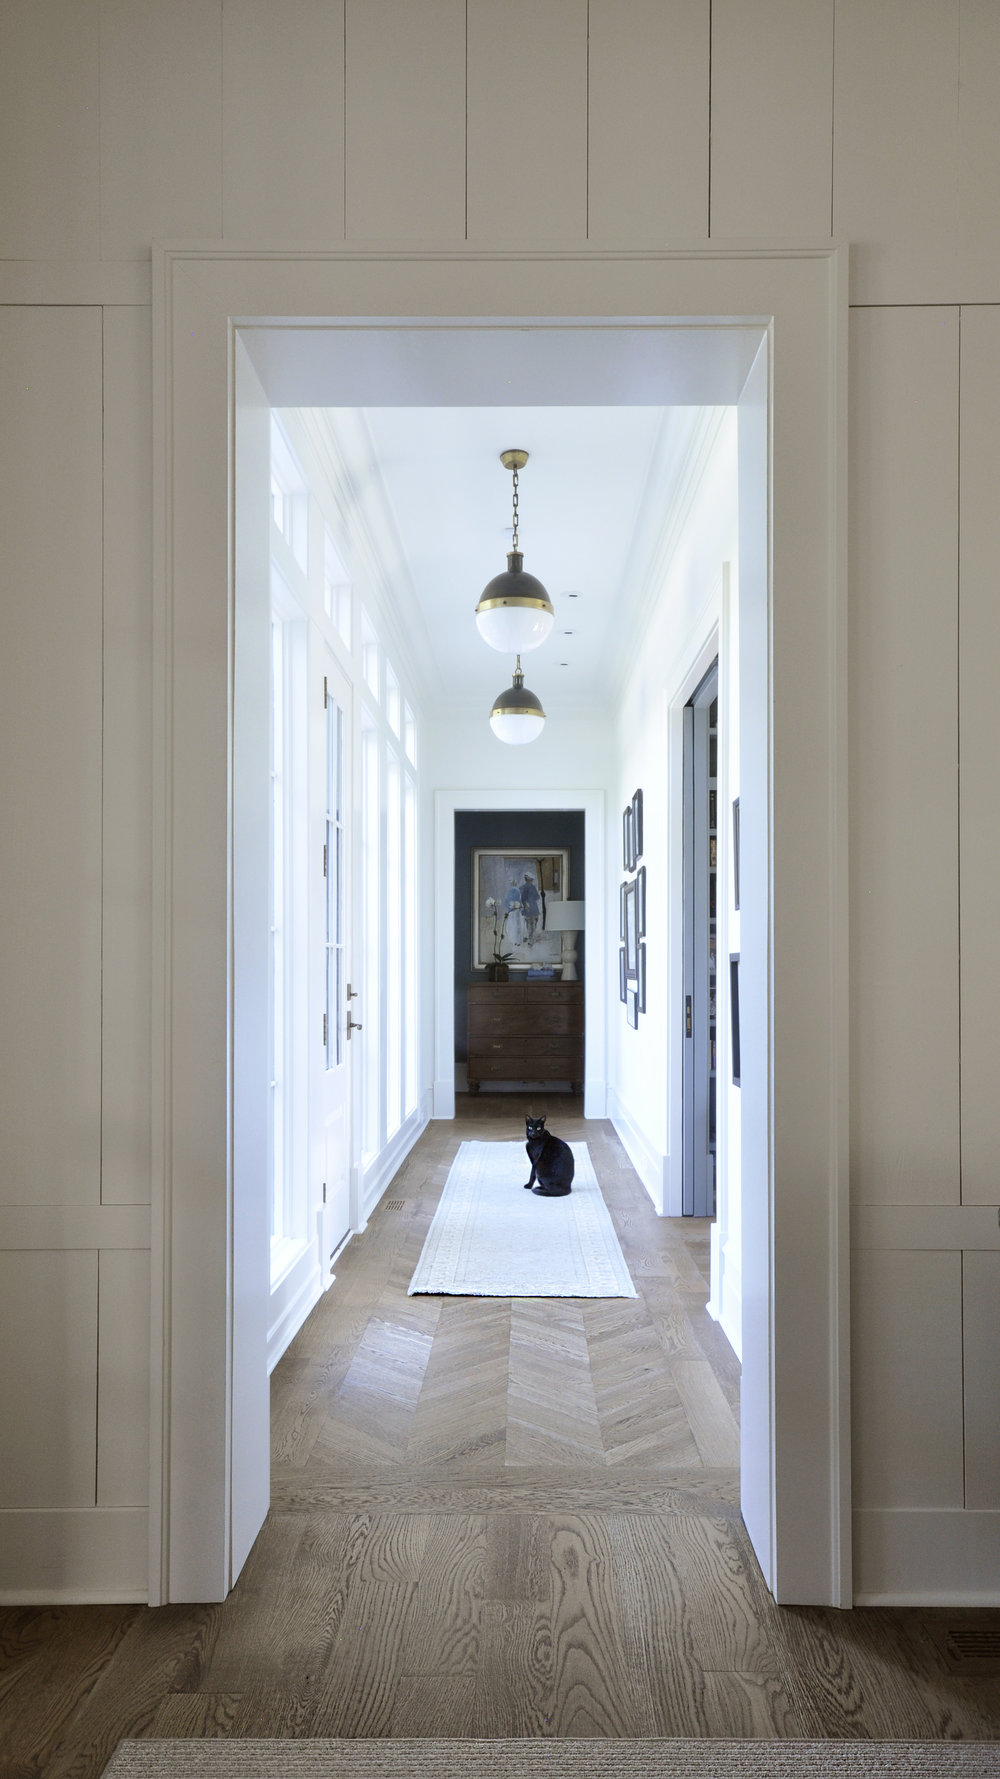 6 Dillard_doorway_cat.jpg